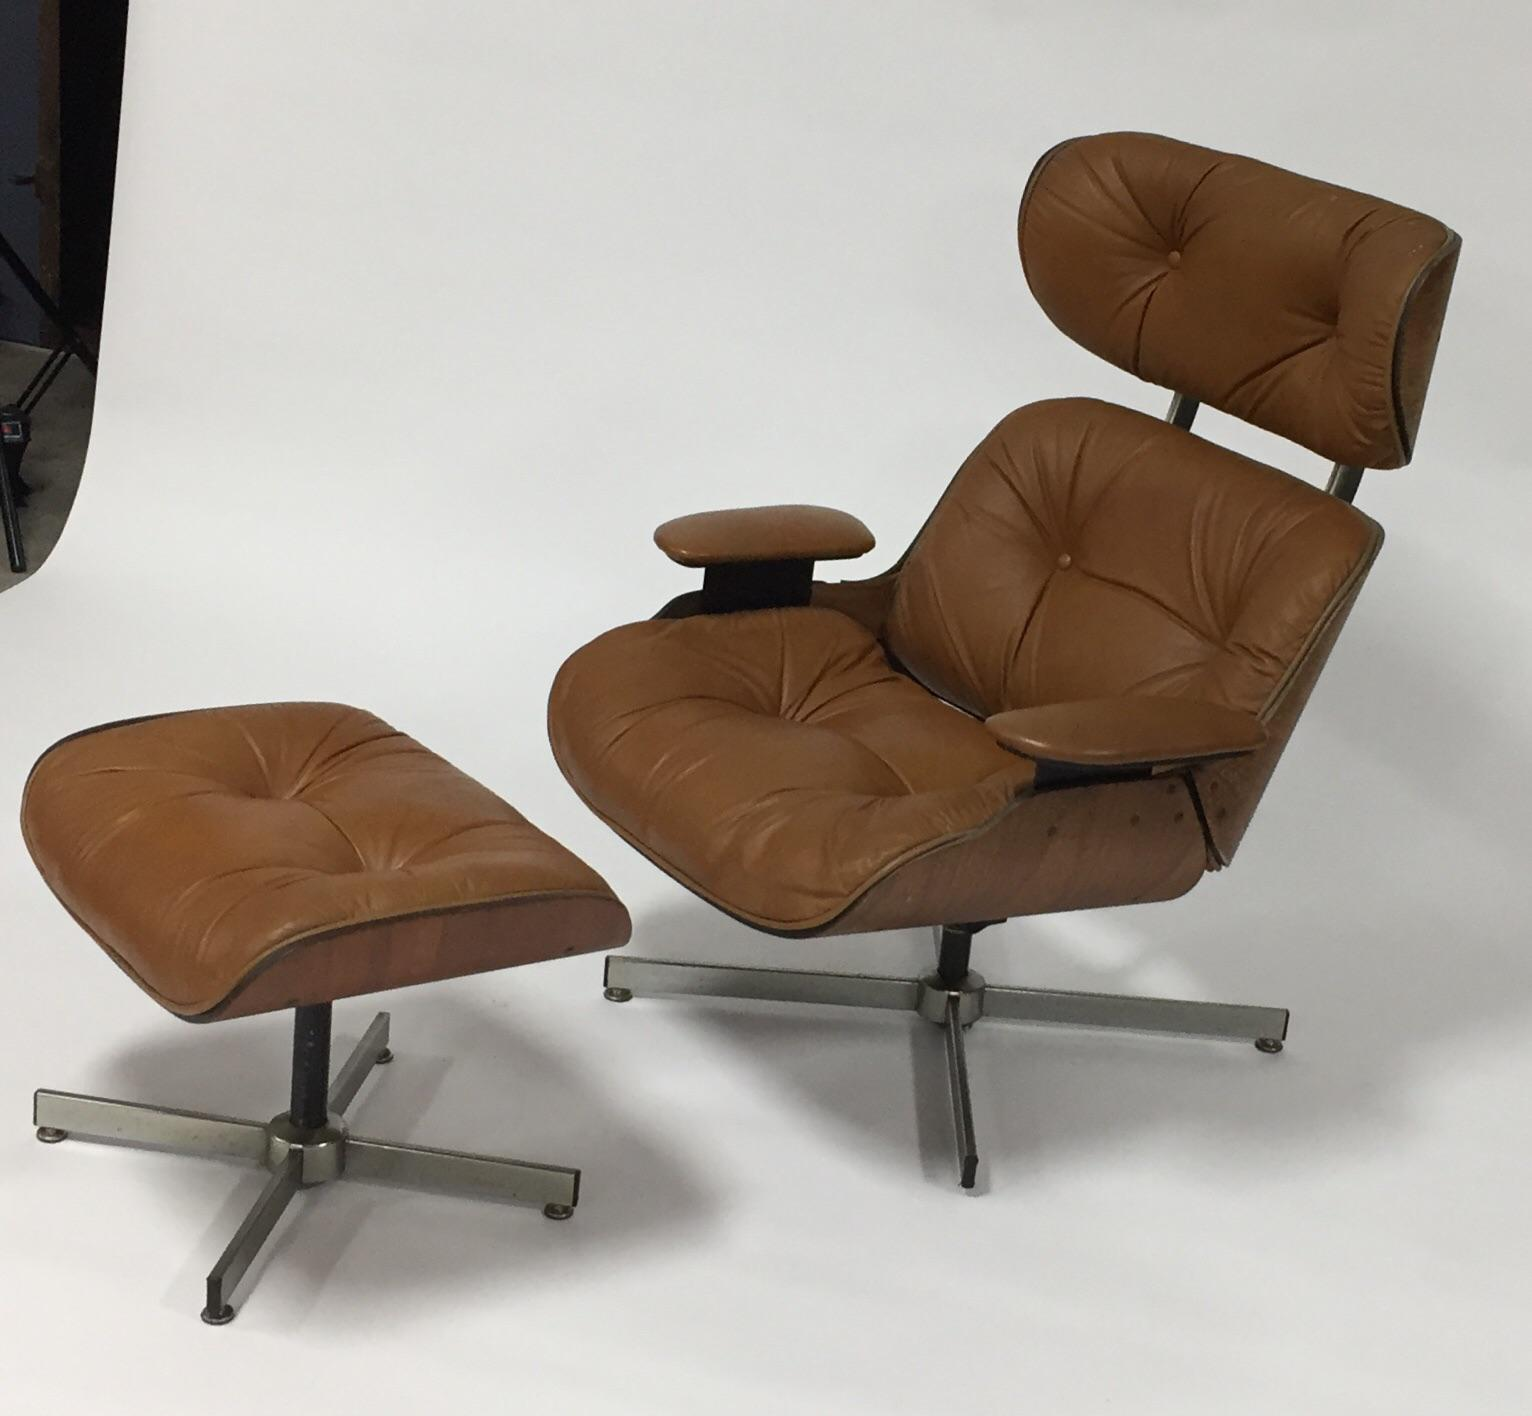 selig eames chair pink nursery rocking mid century modern style lounge ottoman set midcentury molded plywood with leather and by circa 1970s